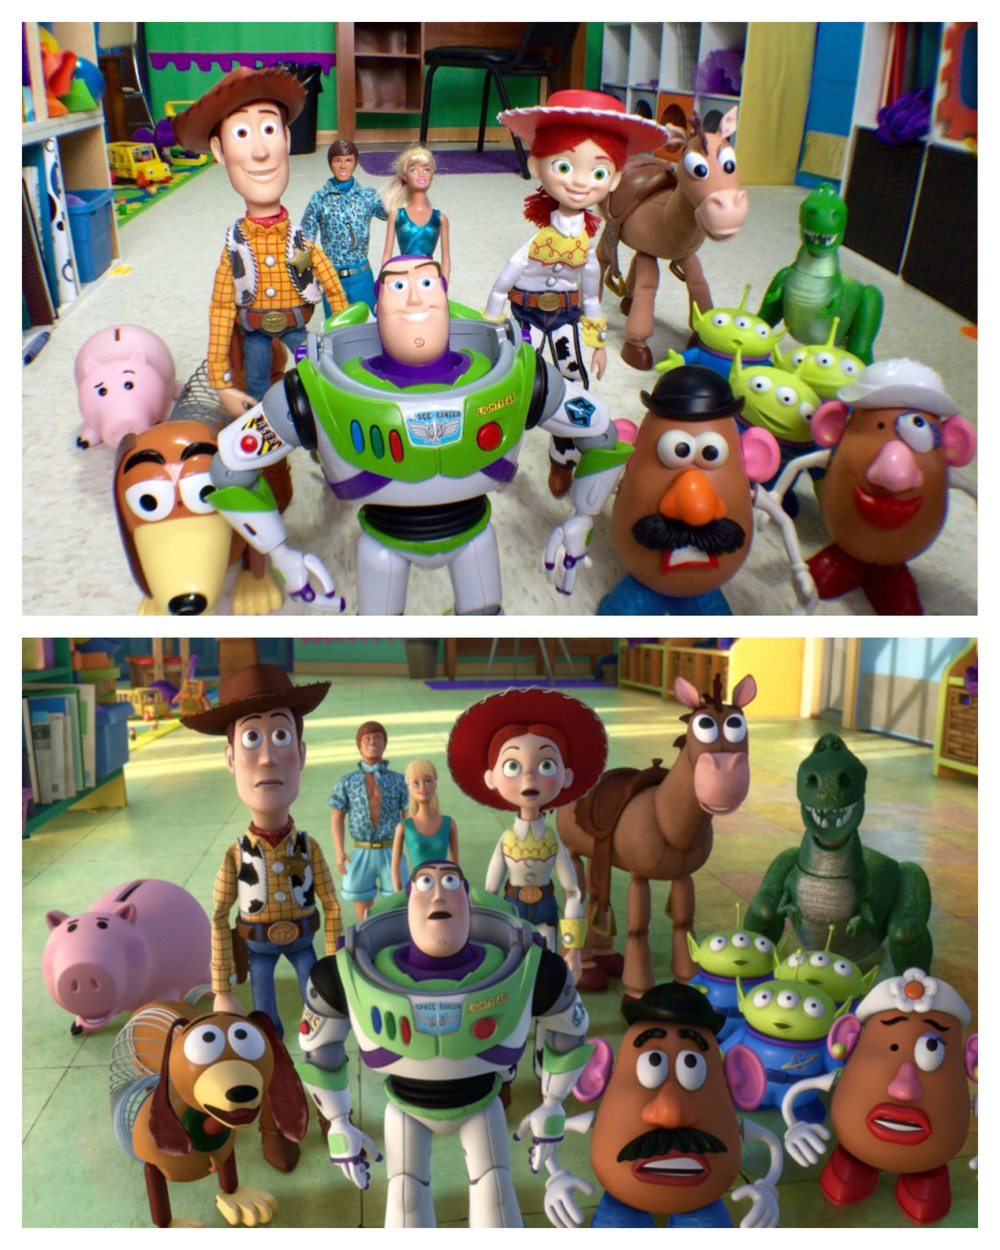 Pixar Fans Recreate Andy's Room From TOY STORY 3 in Real ...